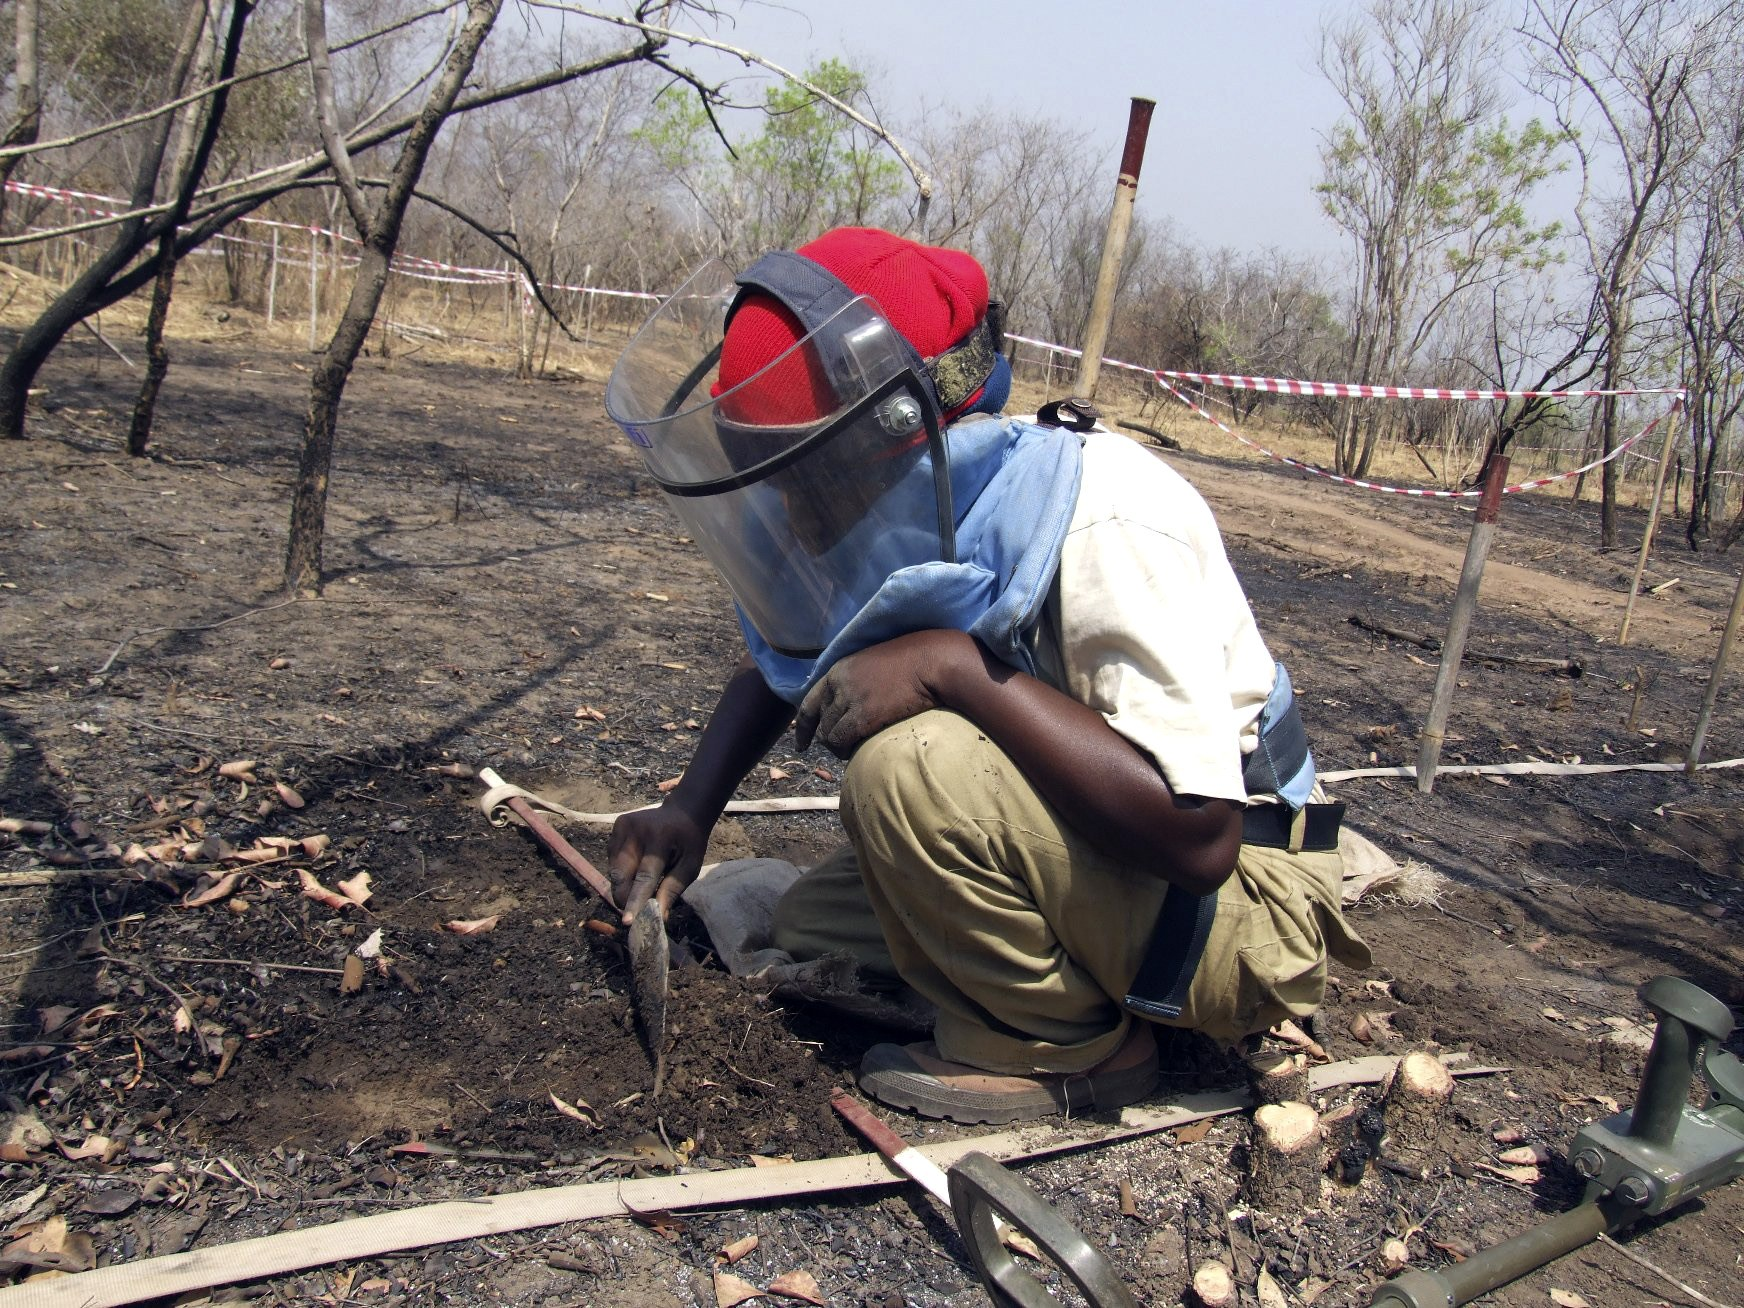 Joanne Jenty, a deminer, searches for mines on the Mile 38 battlefield, 38 miles from the southern Sudanese capital of Juba, in February.